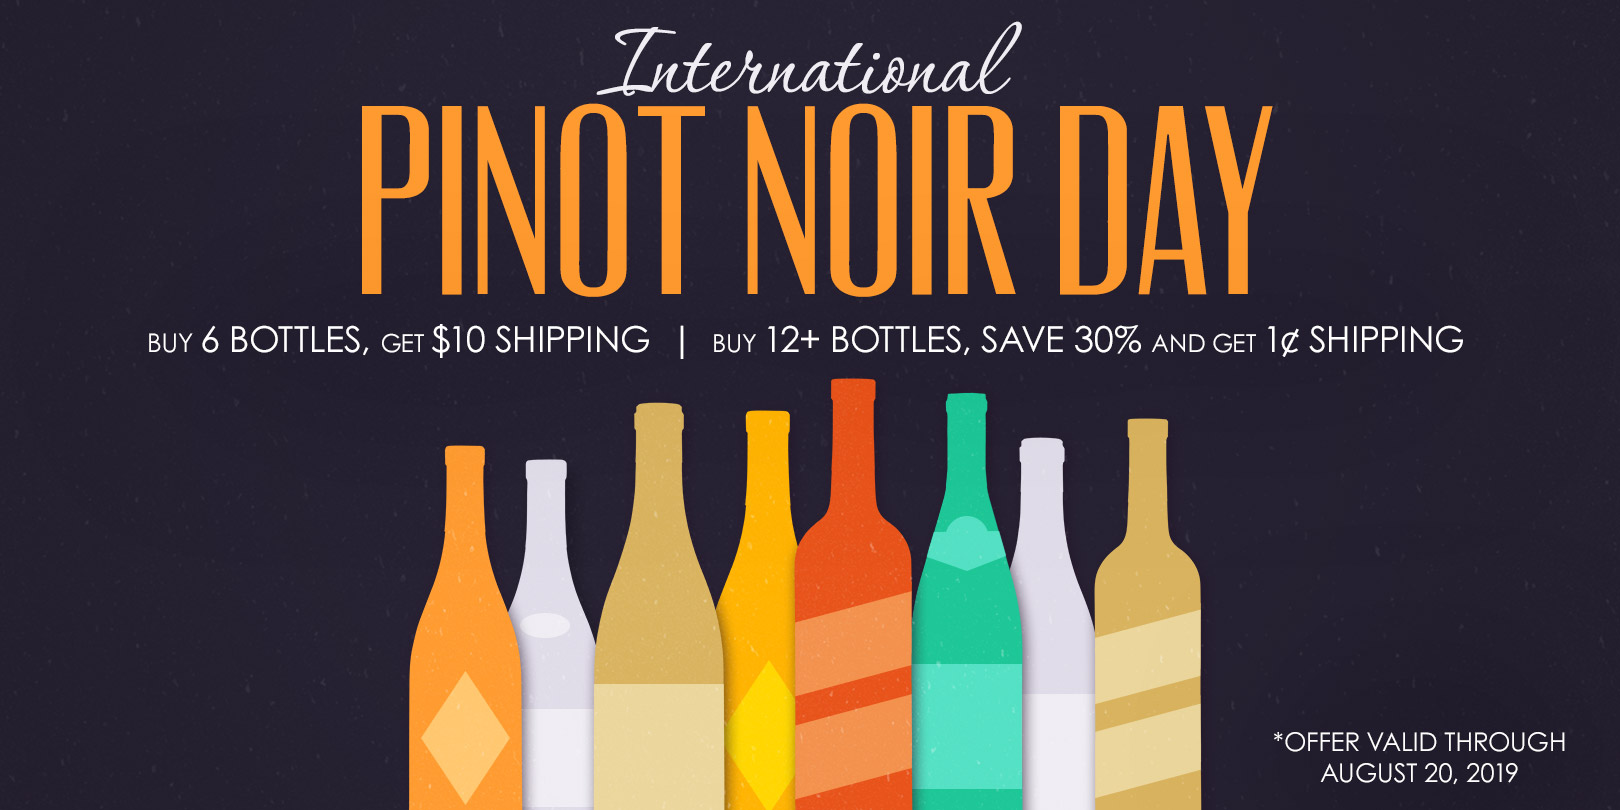 Colorful wine bottles graphics and the words 'International Pinot Noir Day'. - Featured Item